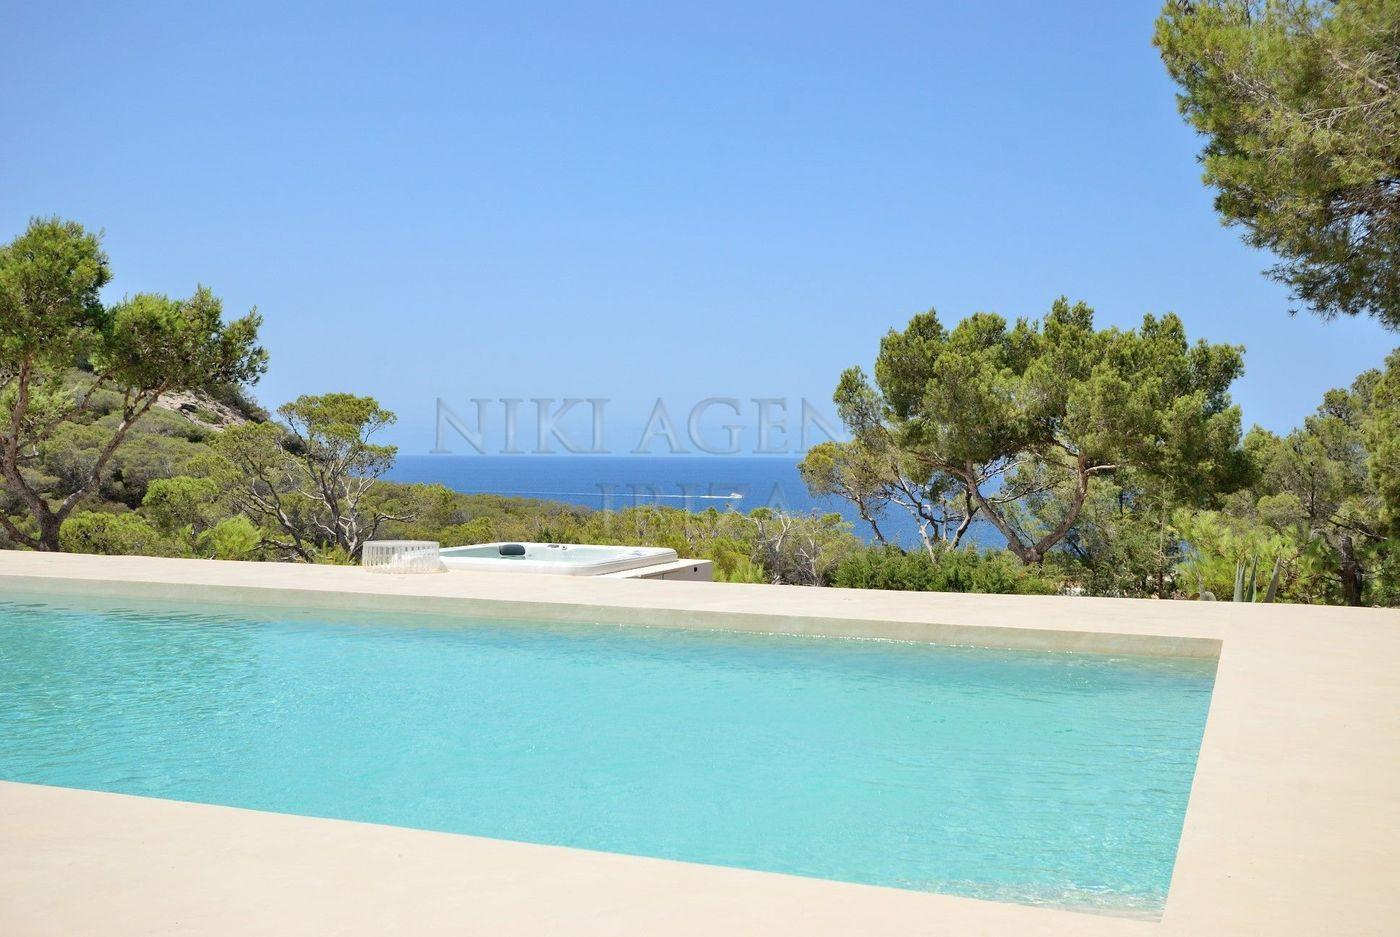 3. House for sale in Sant Josep de sa Talaia Ibiza - Fantastic 4 Bed Villa For Sale in Sant Josep de sa Talaia, Ibiza!